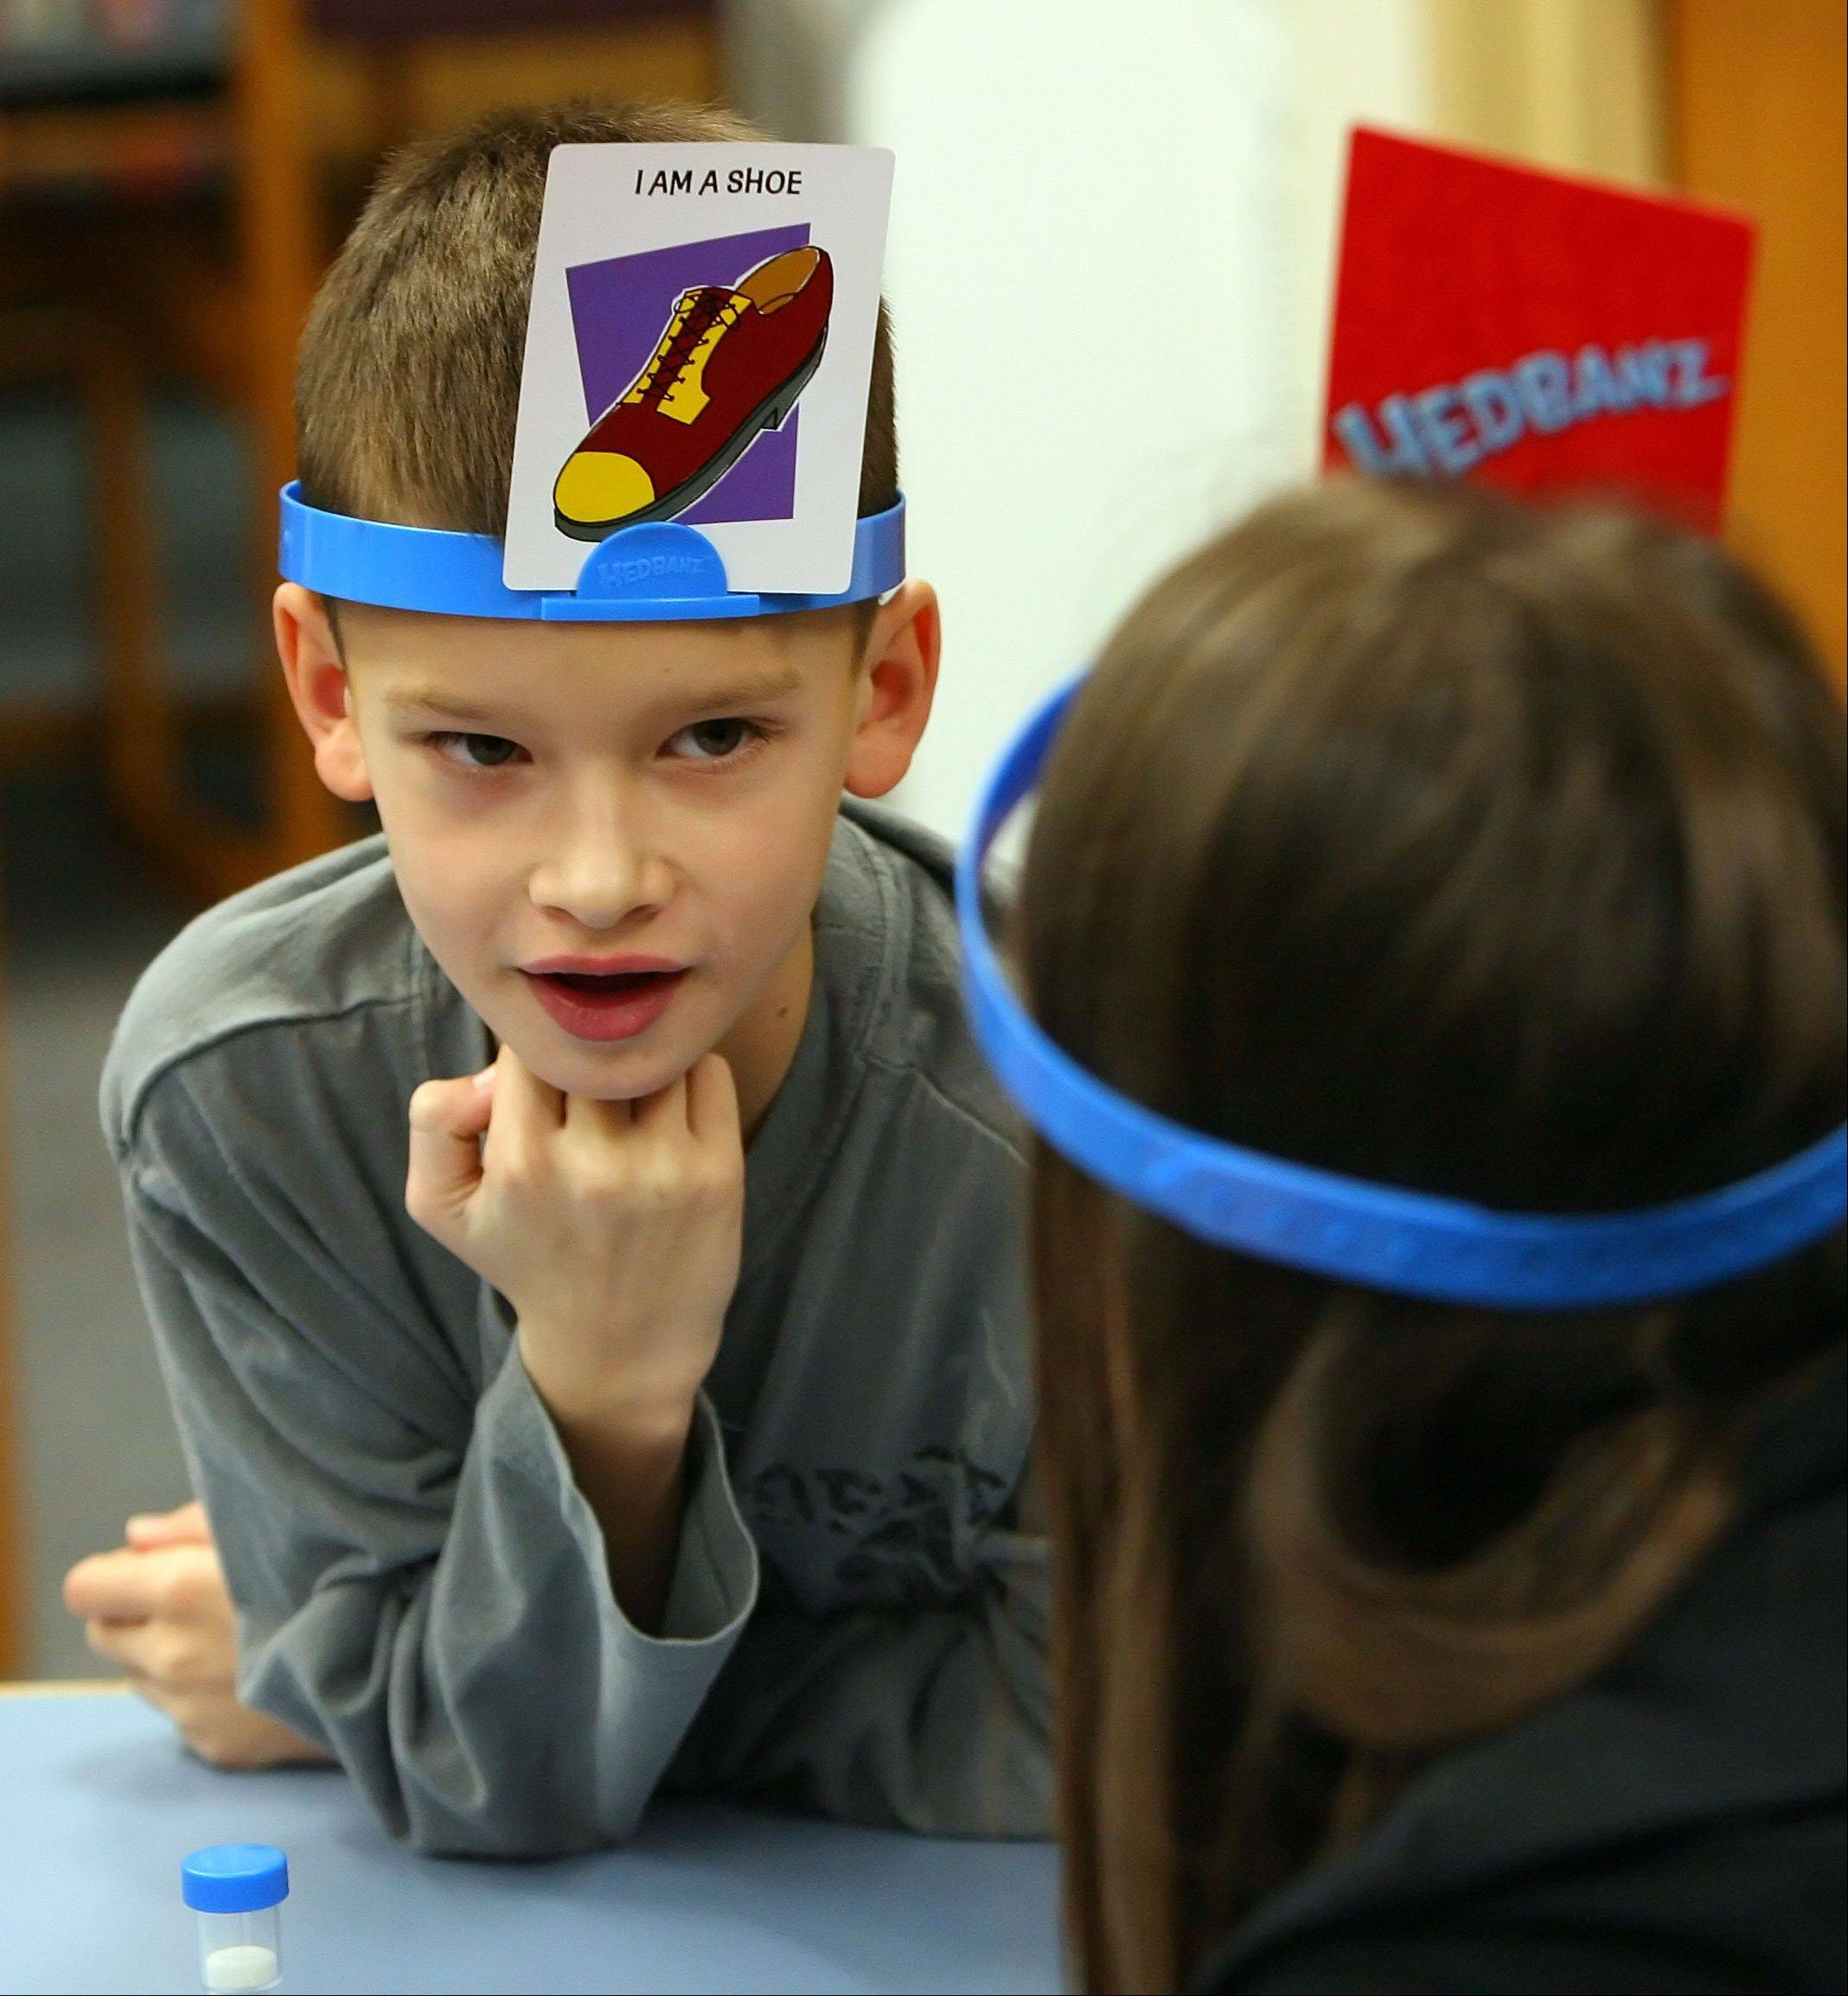 Second grader Joe Butler, left, plays a game called Hedbanz with teacher Danya Greenberg during an after school program called Games Galore at Rockland School in Libertyville Monday.